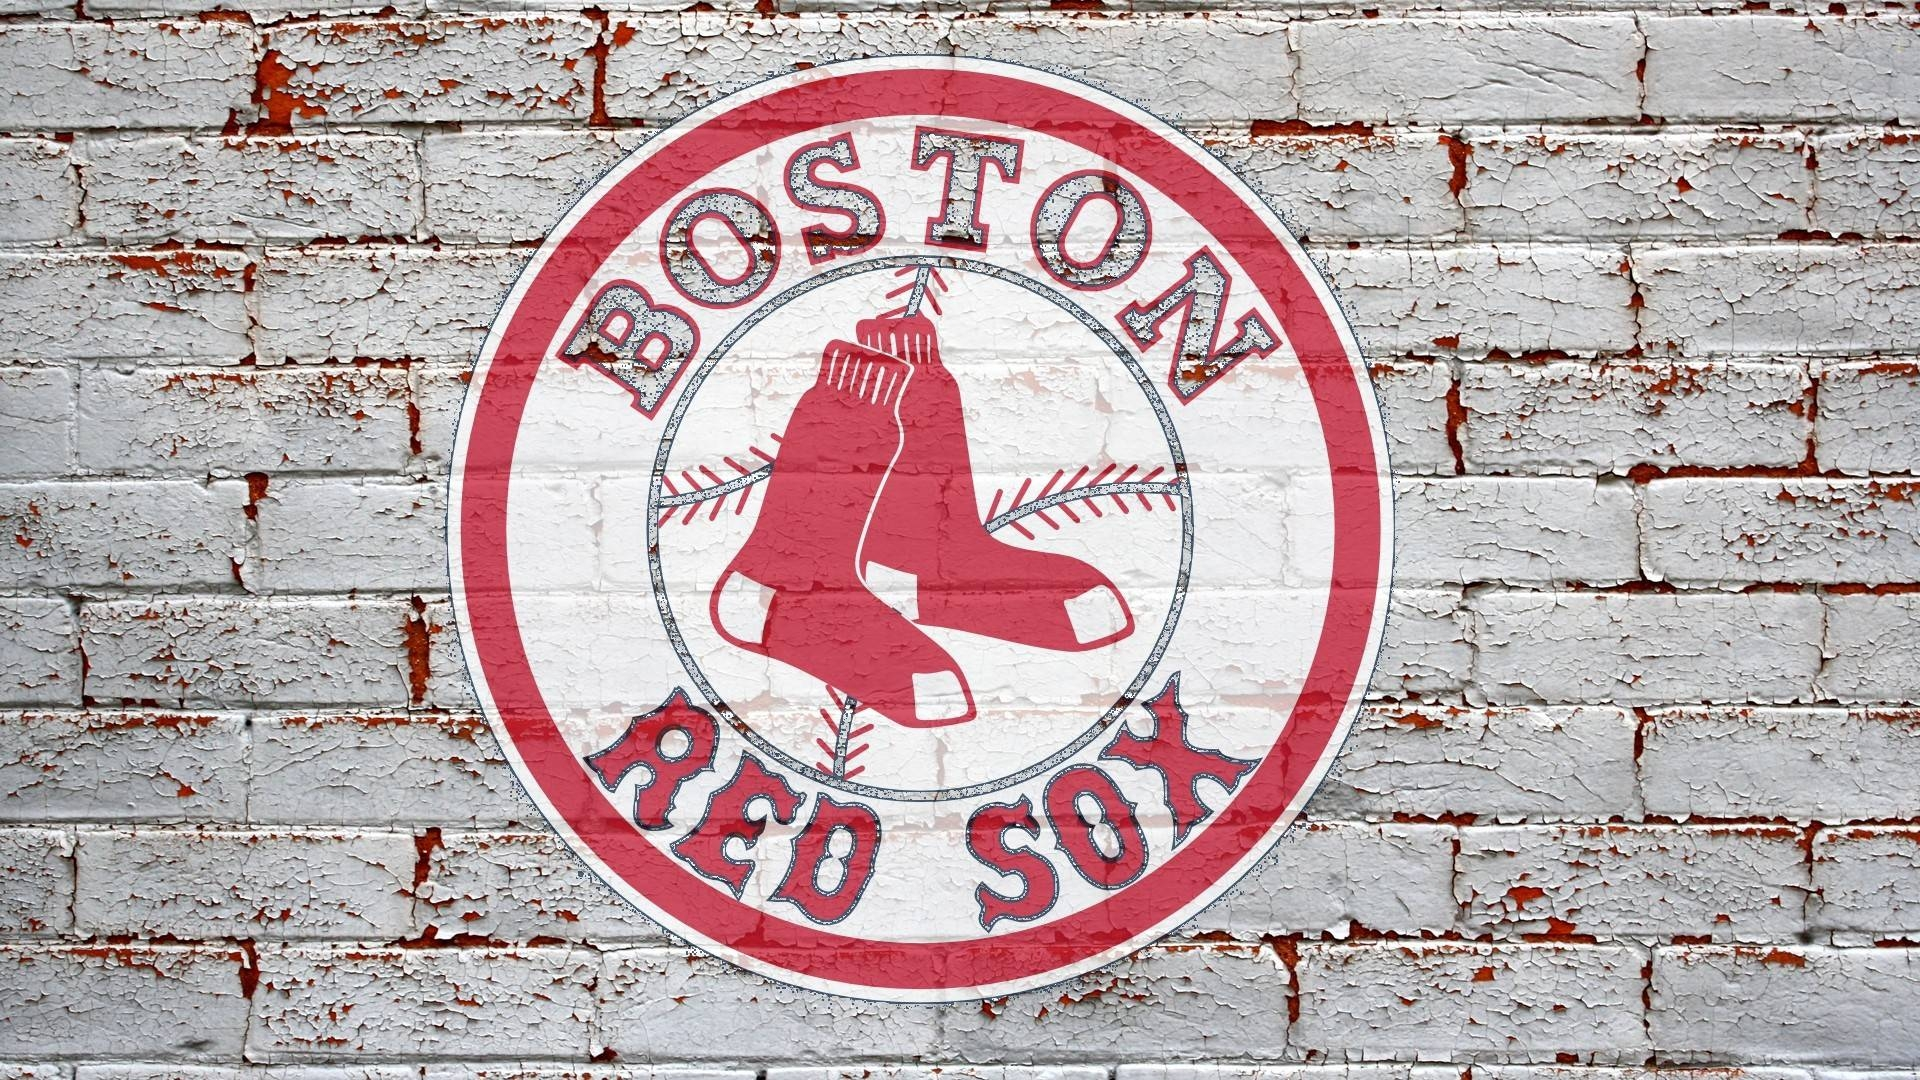 Boston Red Sox Wallpaper | Free Download Clip Art | Free Clip Art Pertaining To Recent Boston Red Sox Wall Art (View 17 of 25)